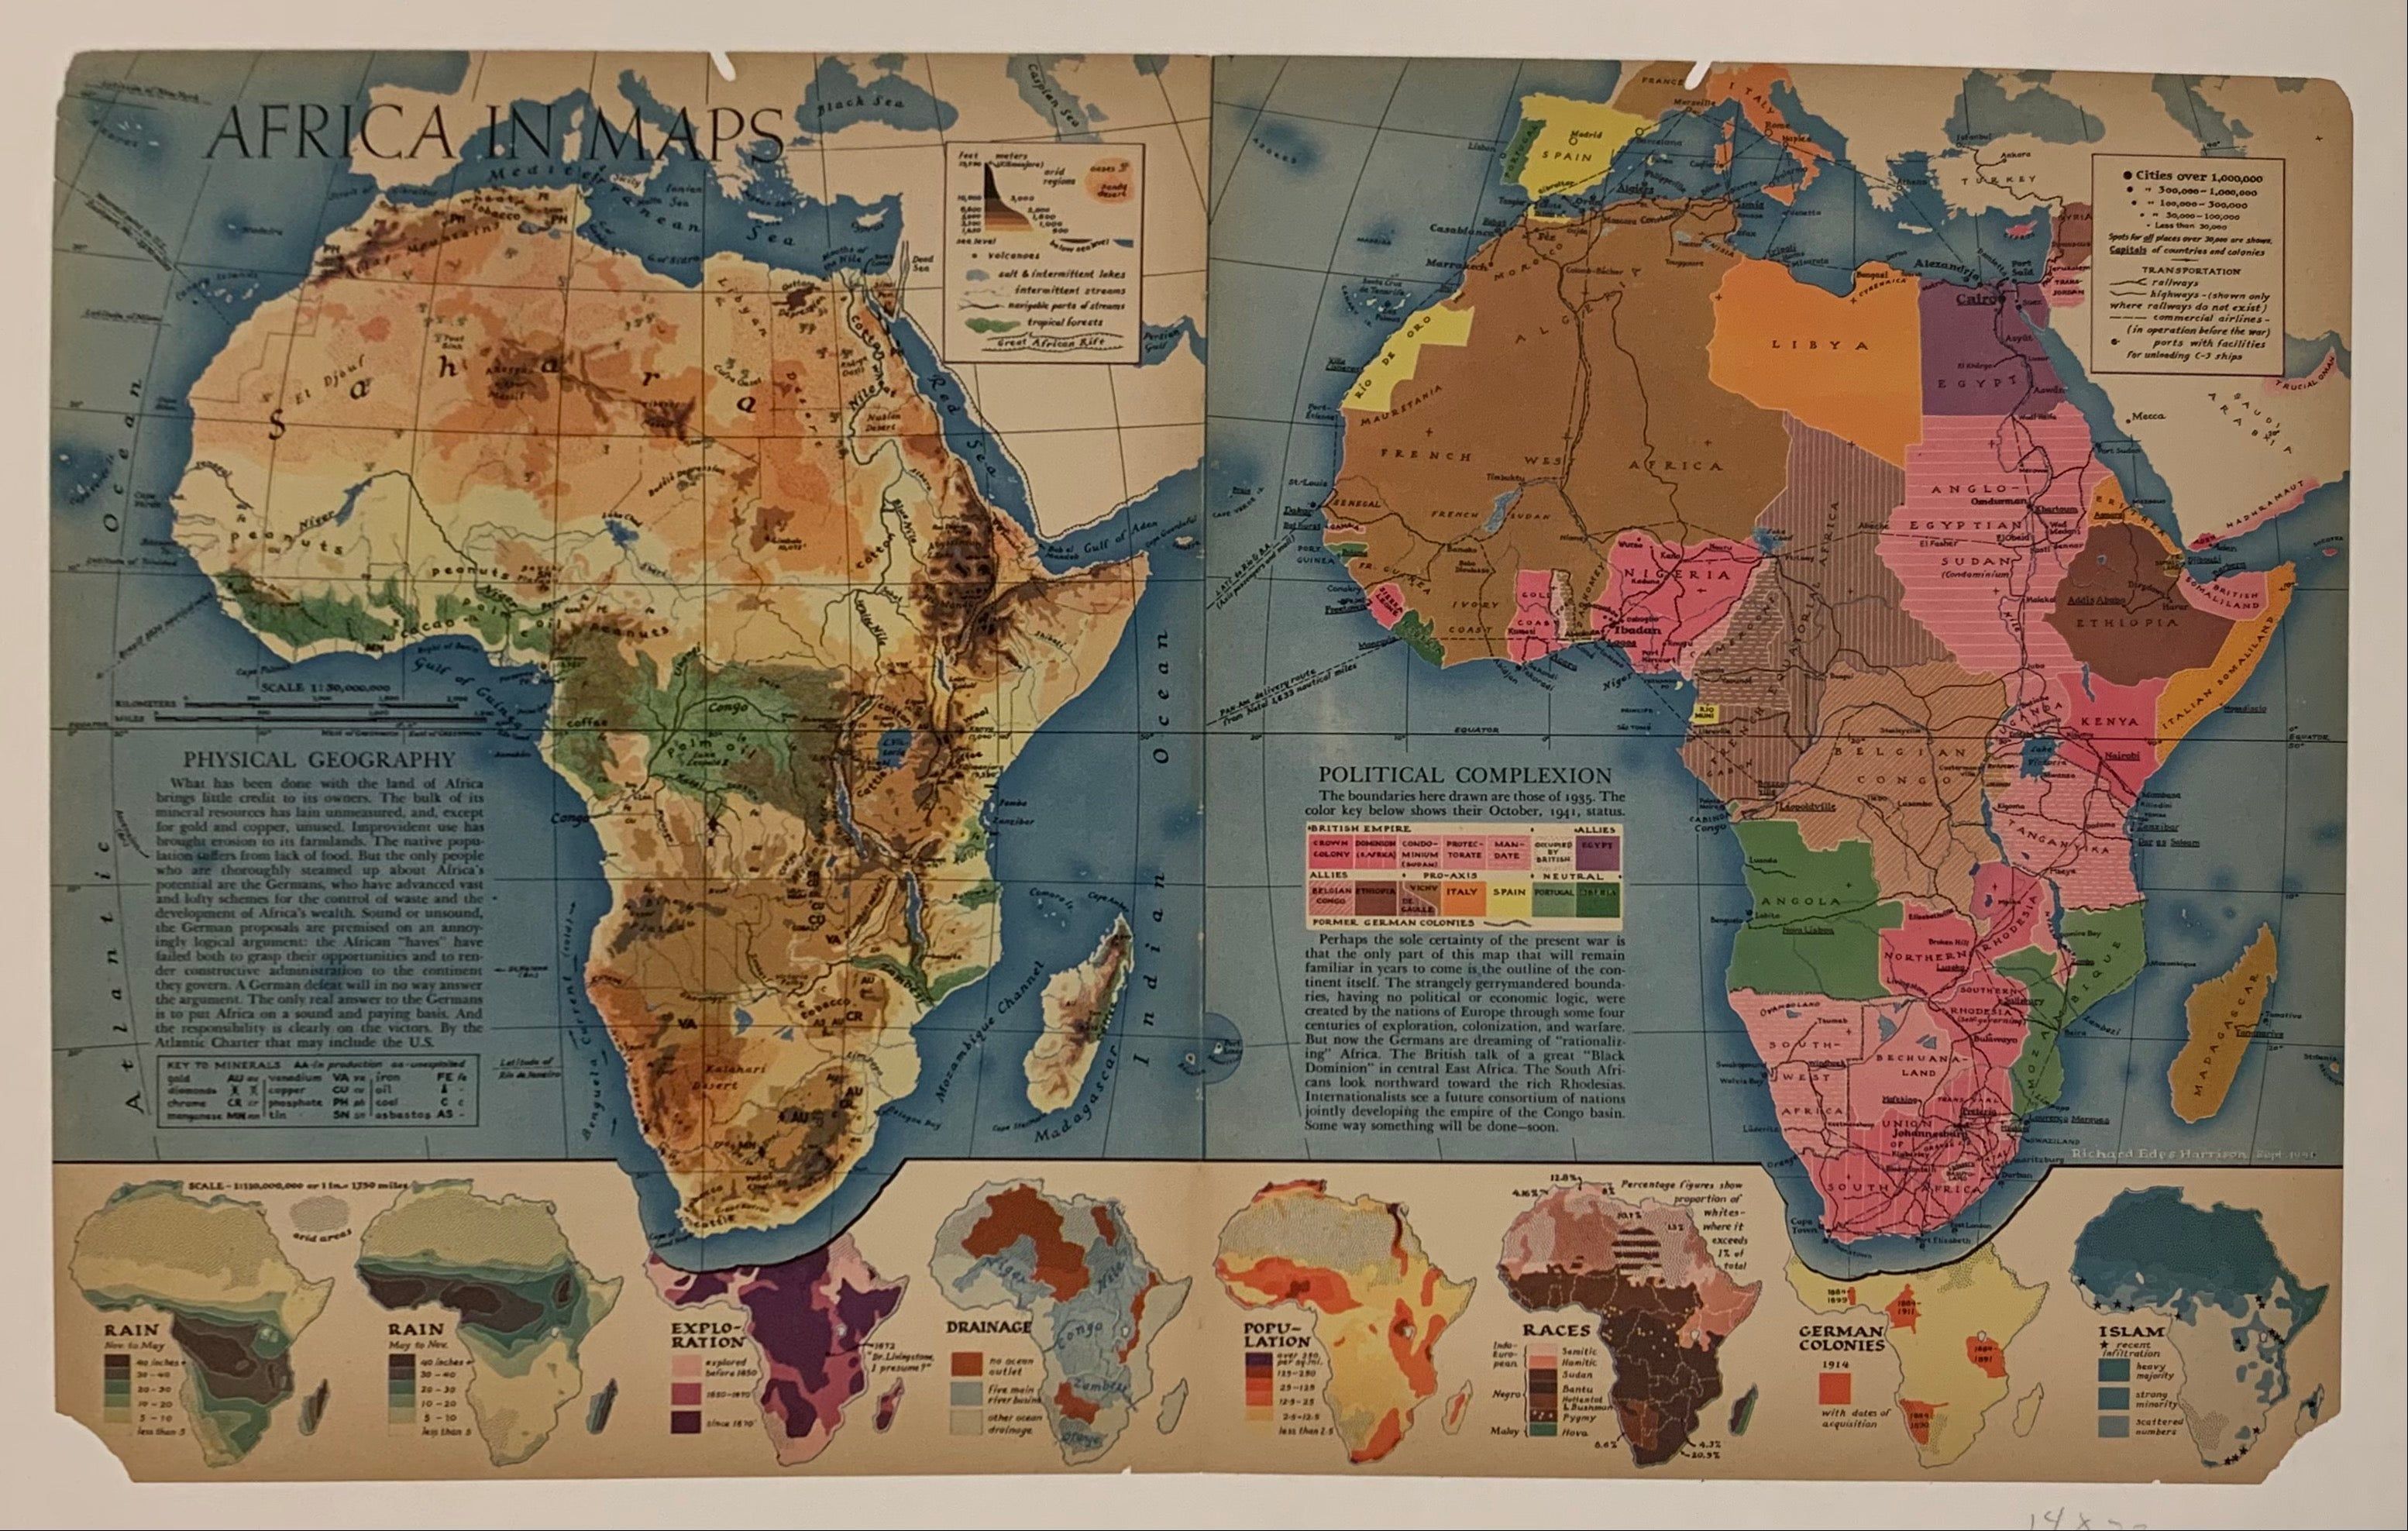 Africa in Maps